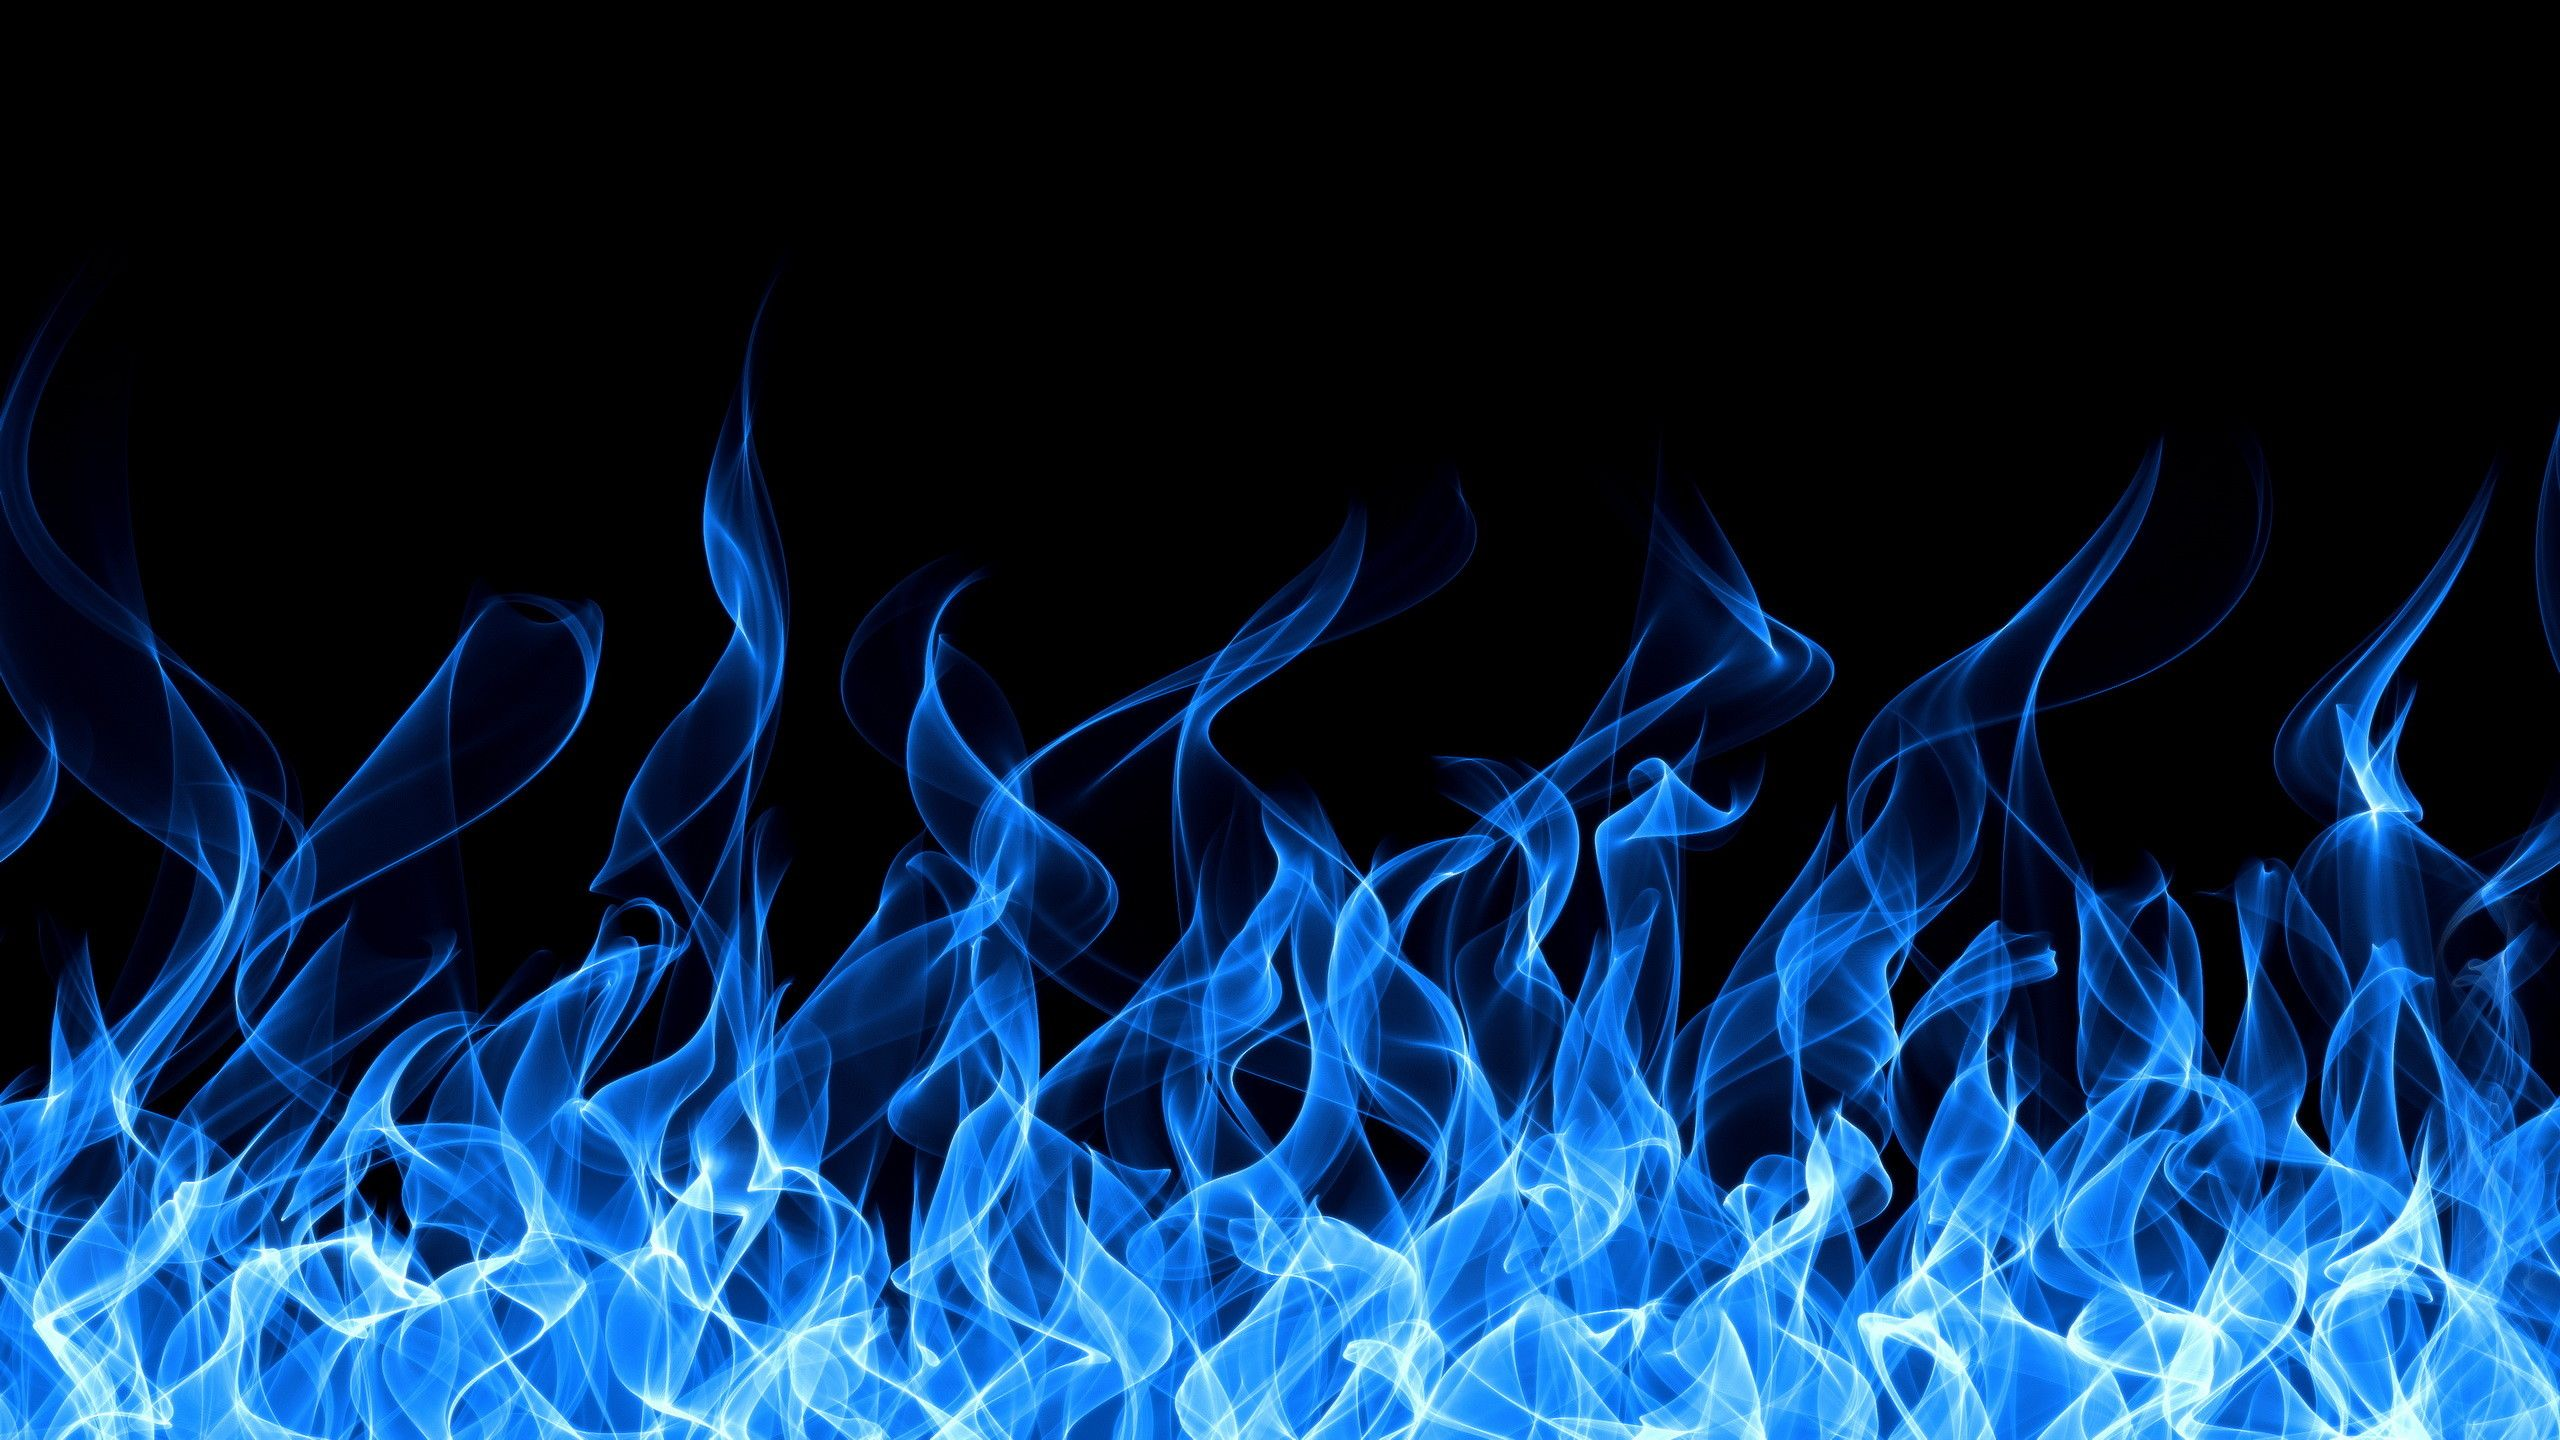 Flame Backgrounds (56+ images) (With images) Blue flames